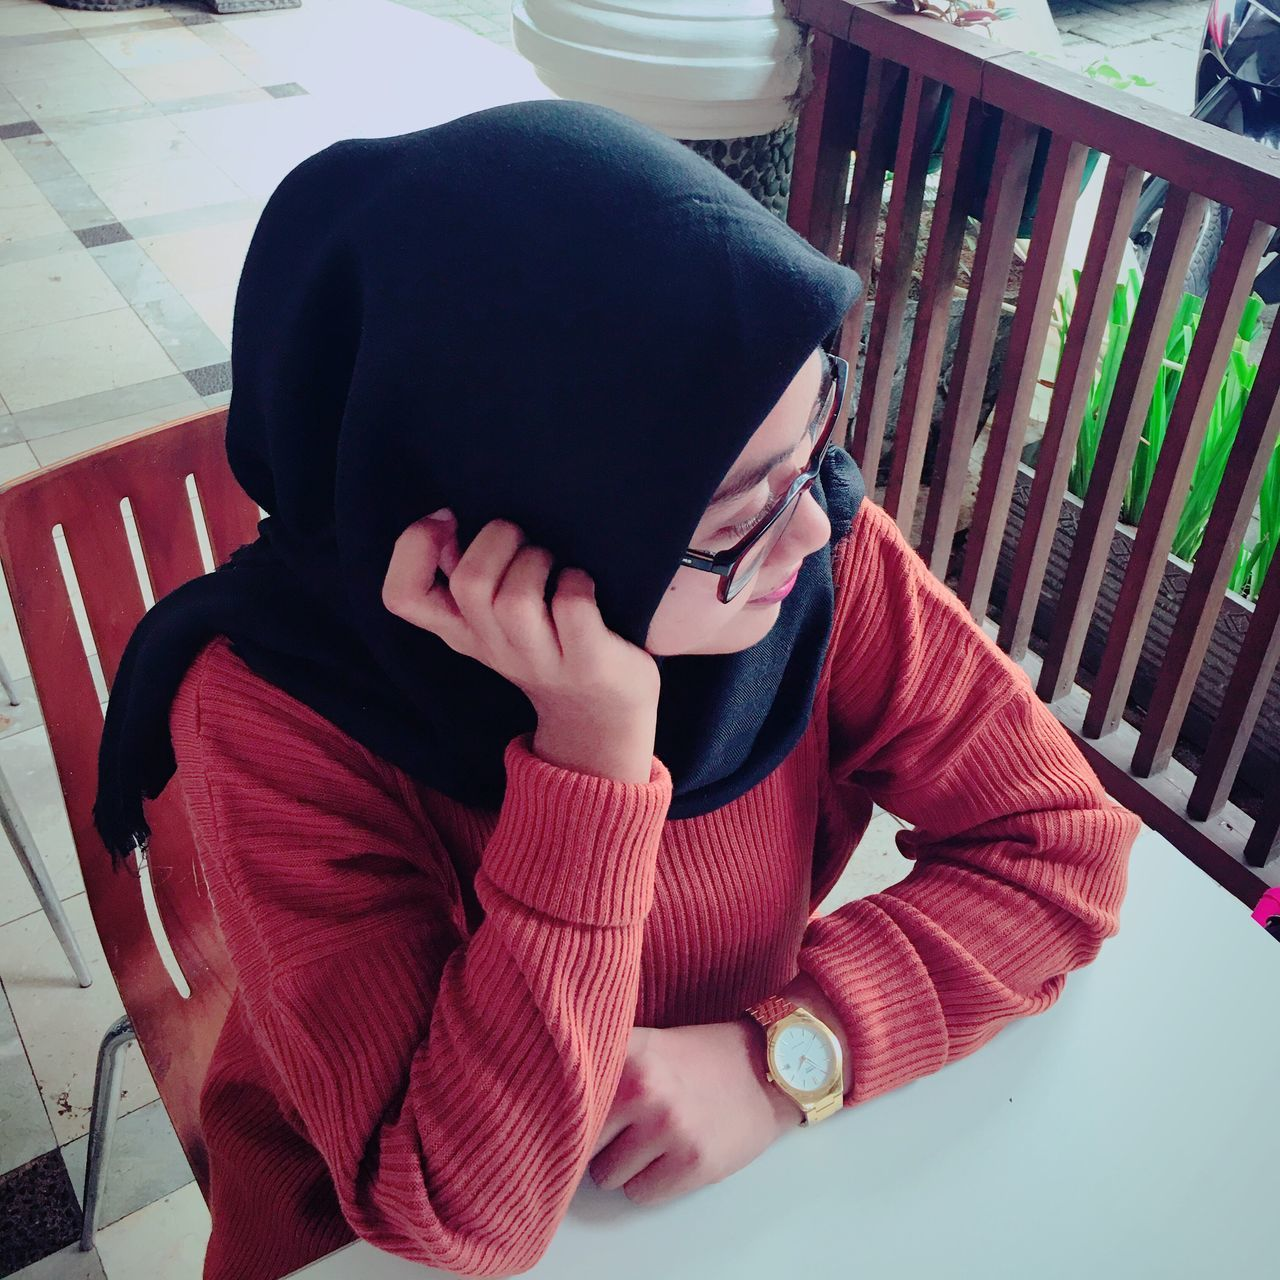 Hijab woman Obscured Face Sitting Young Adult Casual Clothing Relaxation Day Person Red Human Face